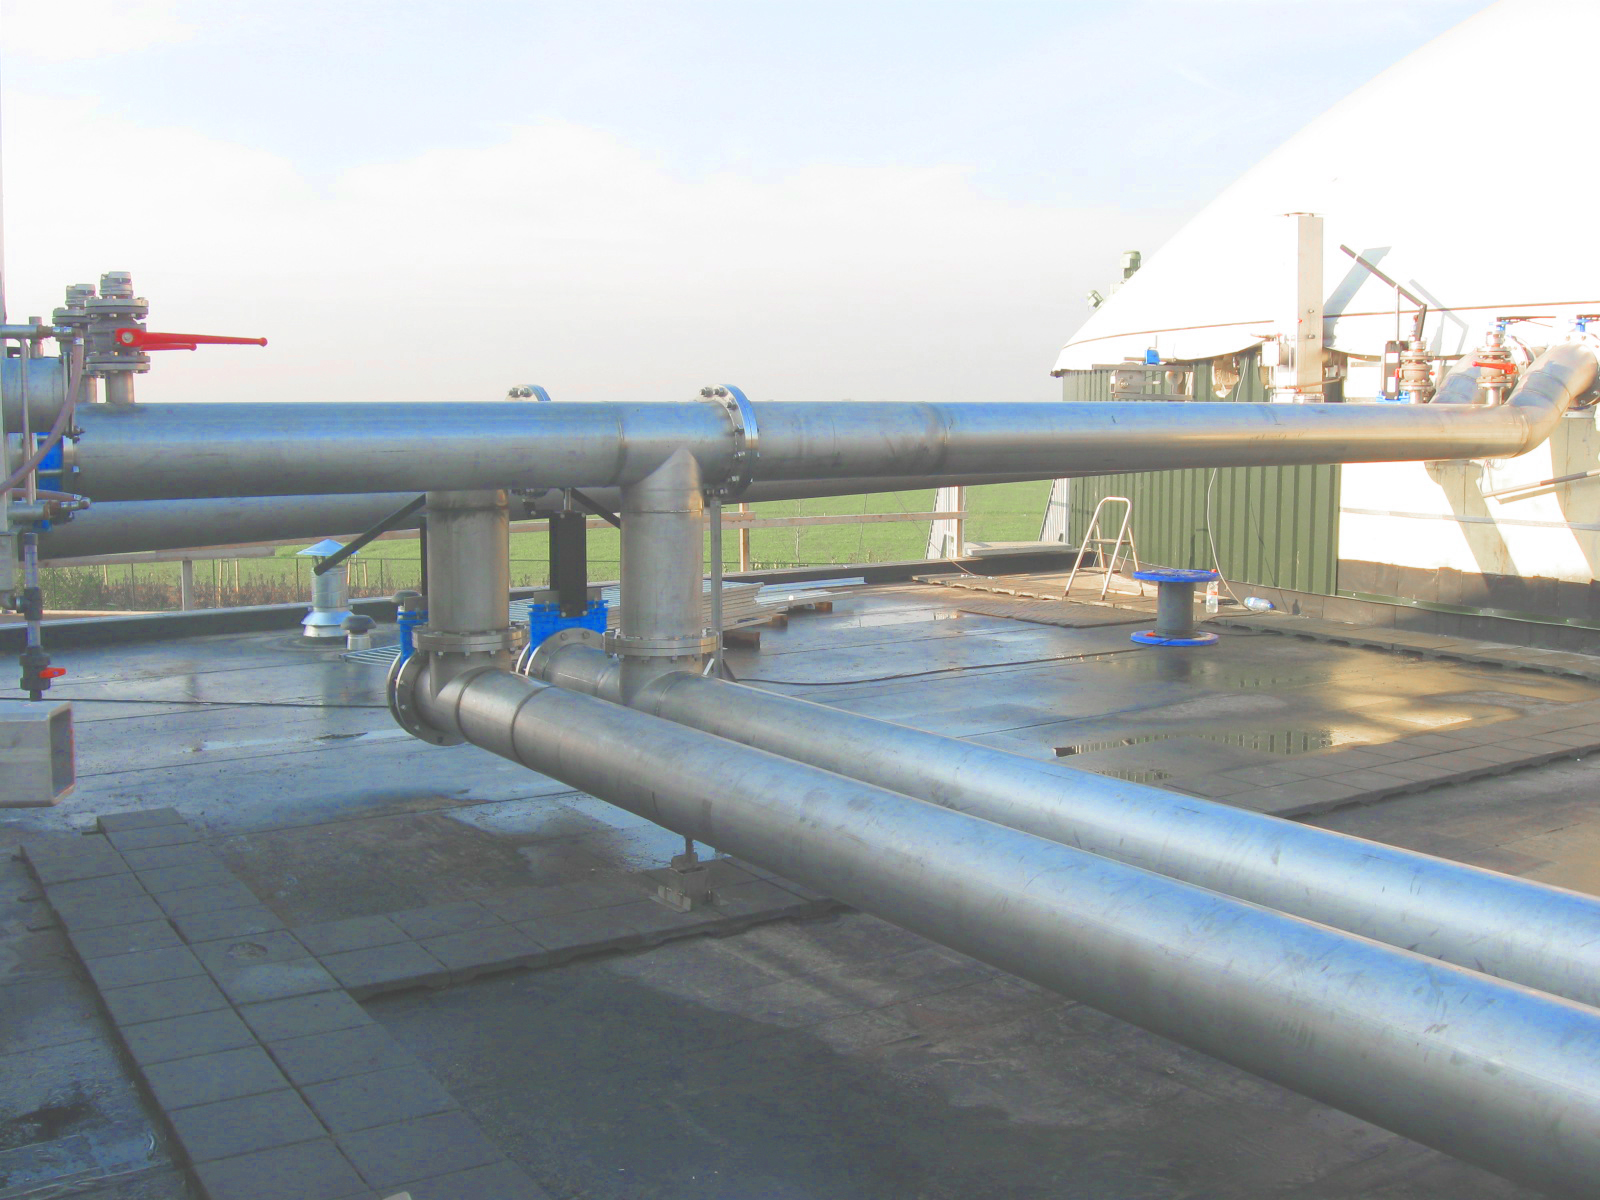 02 Planta de Biogás de 2 MW en Moerstraten Países Bajos - Galvanized Piping and Appliance Installations